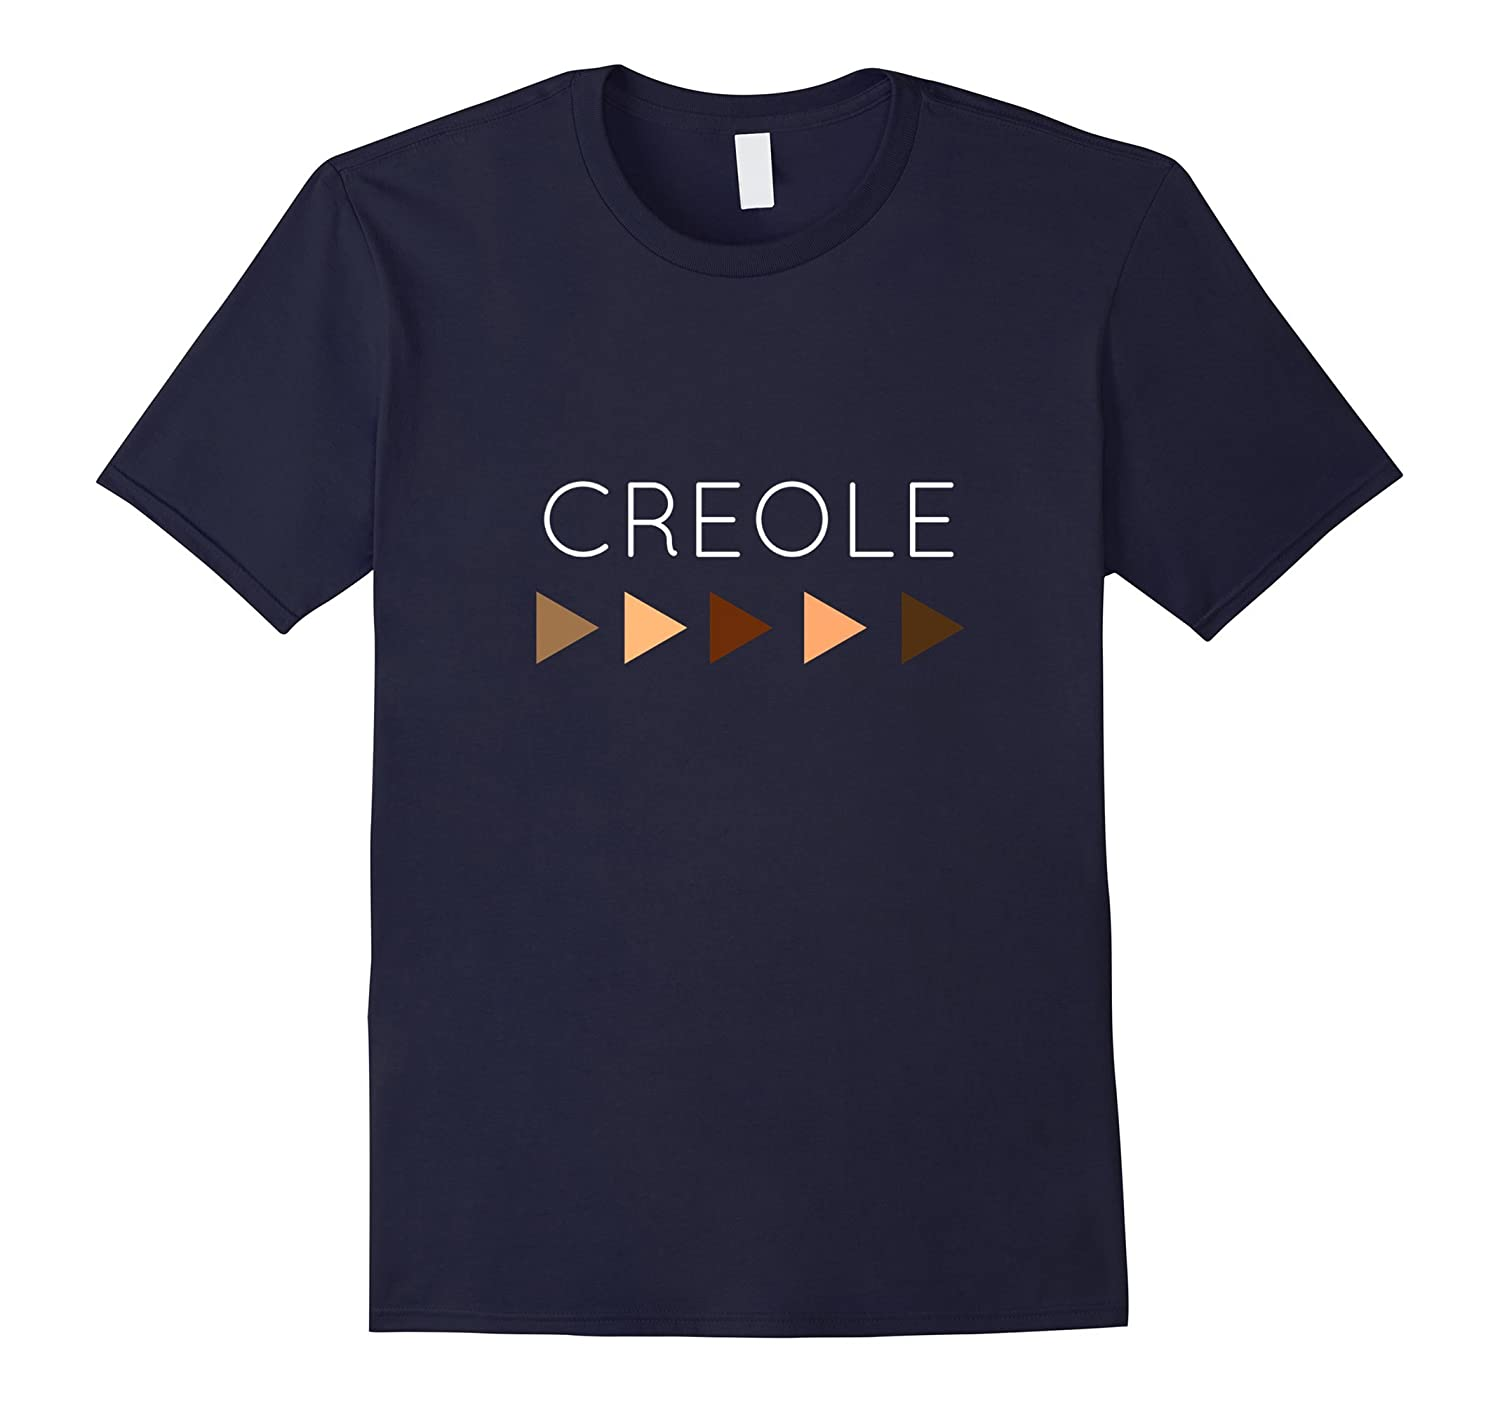 Creole All Shades T-shirt-Vaci